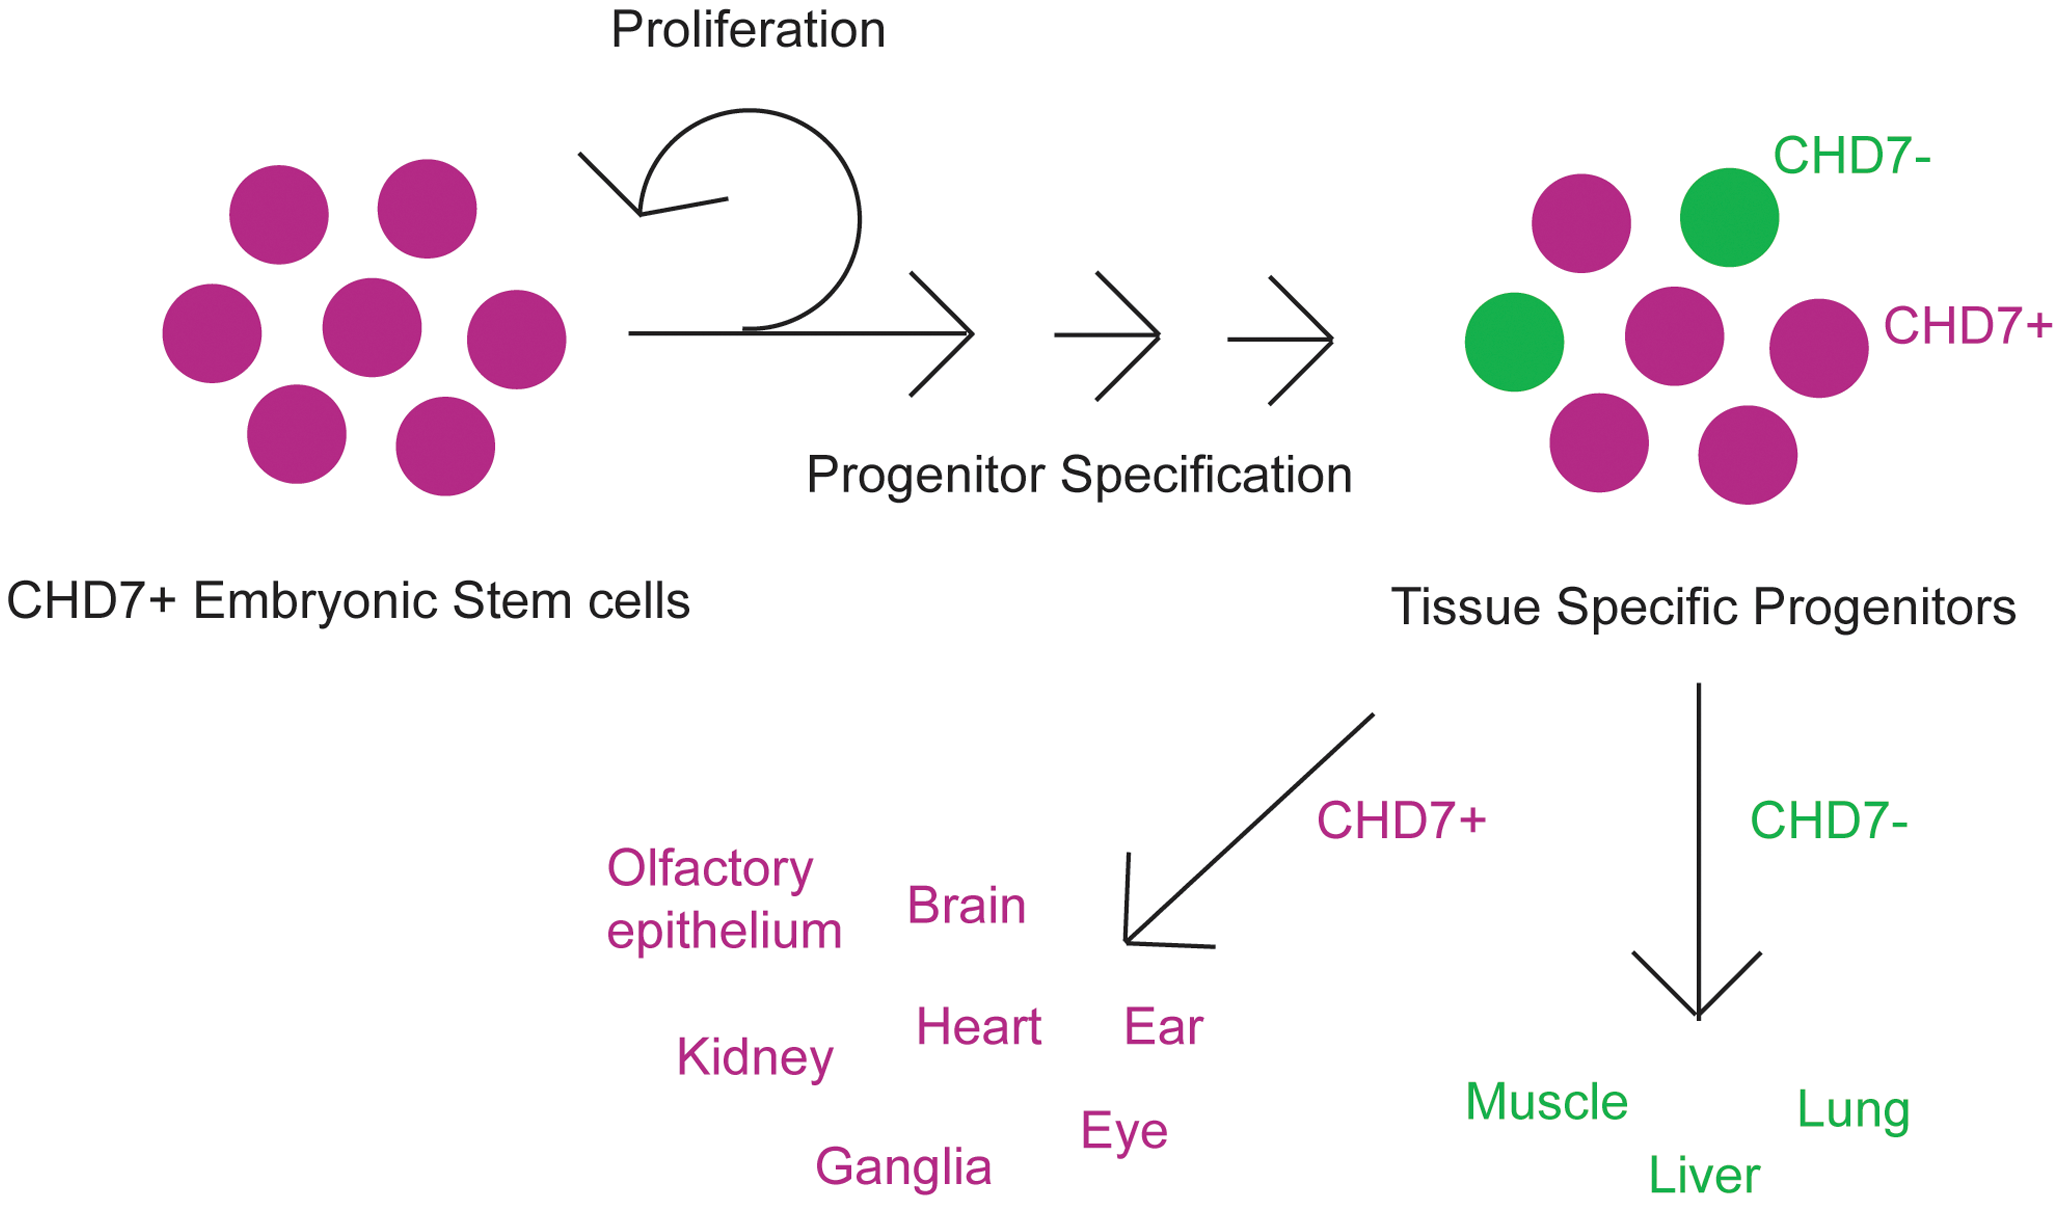 Cartoon schematic of CHD7 roles in cellular proliferation and/or differentiation.